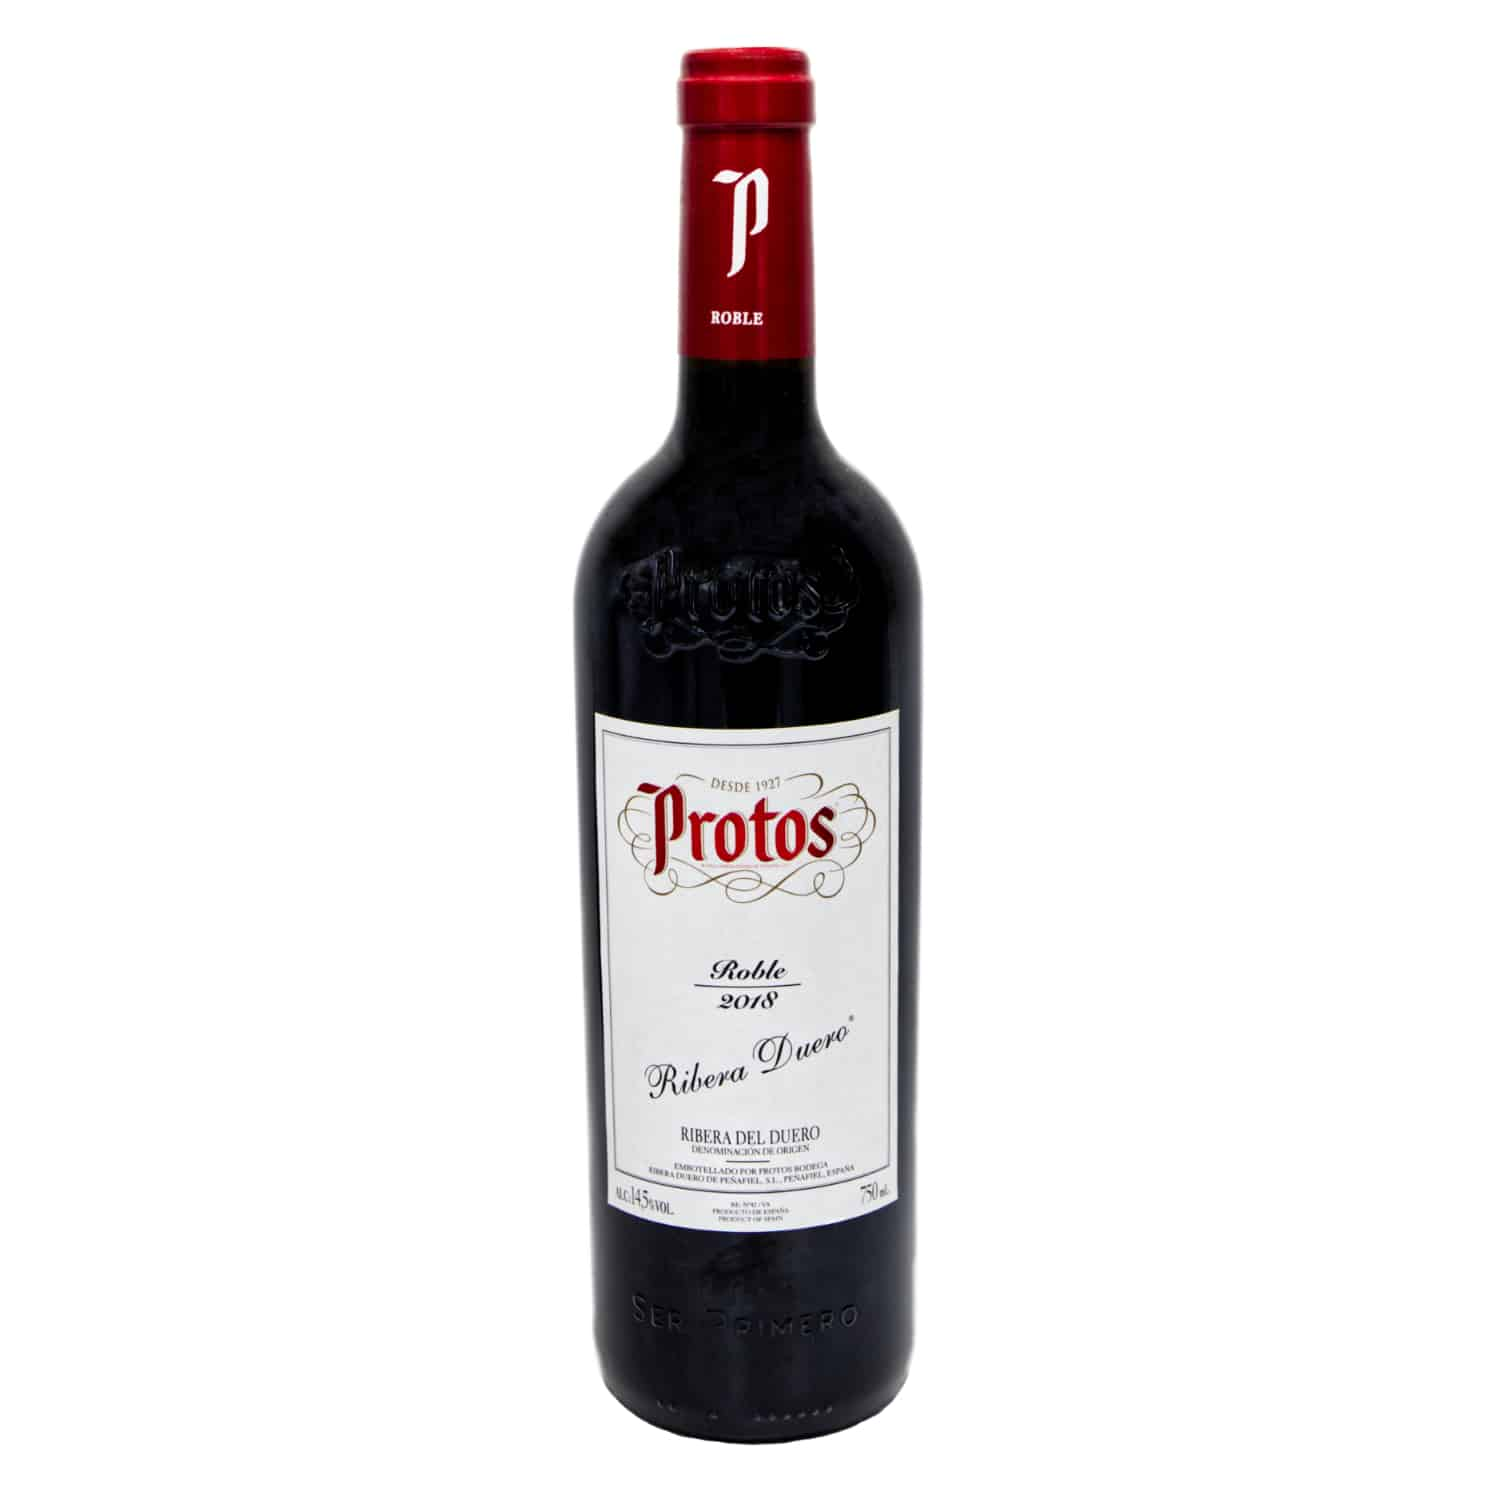 rotwein protos roble 2018 075l front